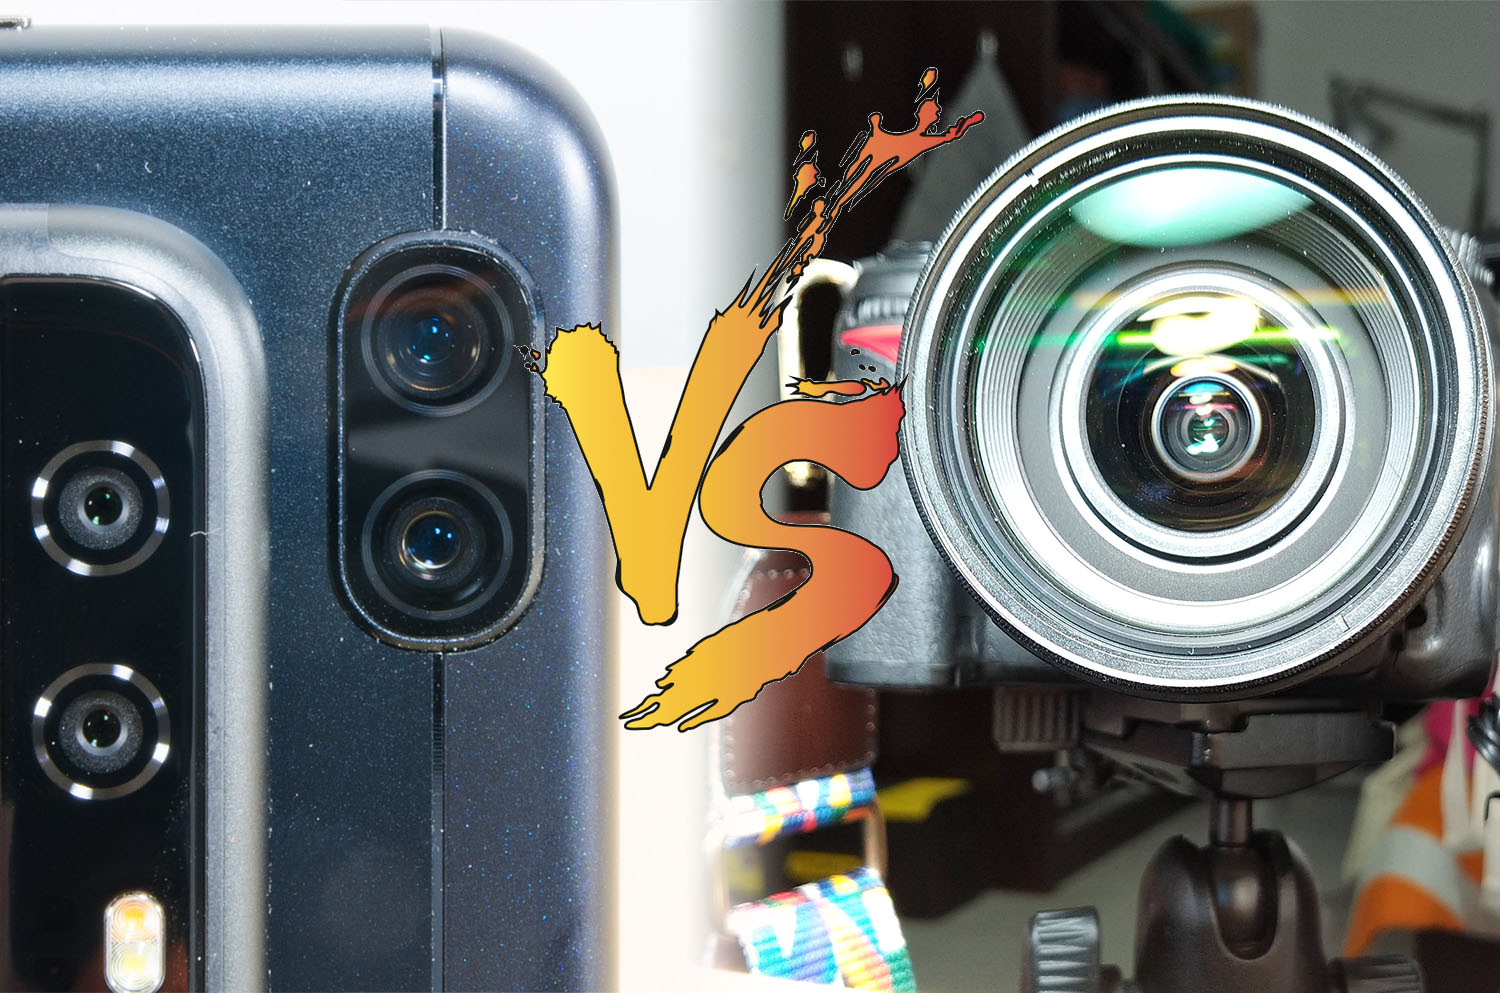 DSLR vs. Smartphone Photography